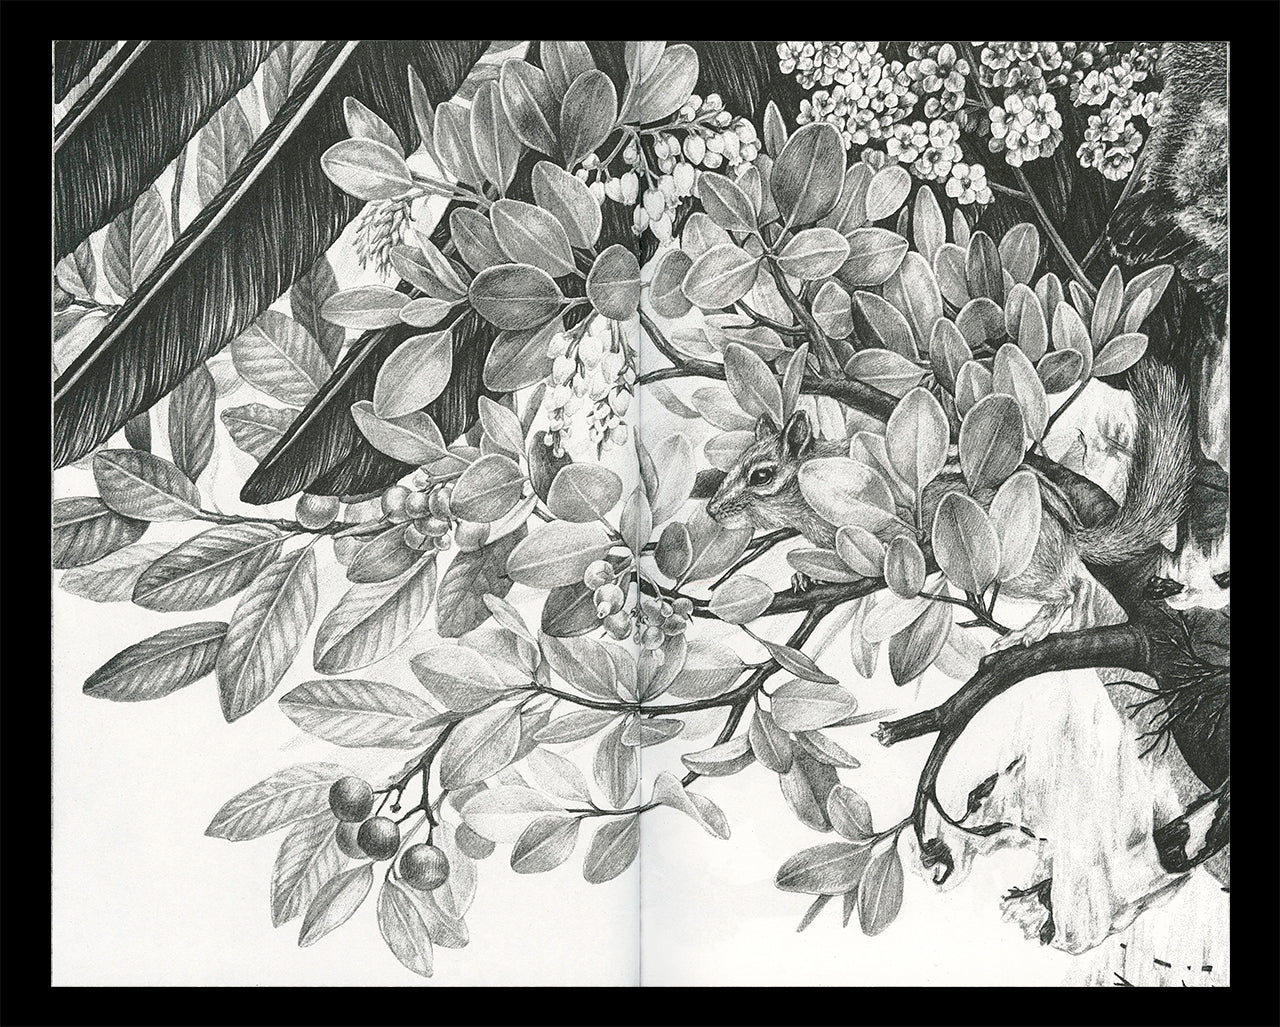 """Interior spread of Zoe Keller's zine """"Drawings"""" showing a graphite drawing of a chipmunk in a tree"""